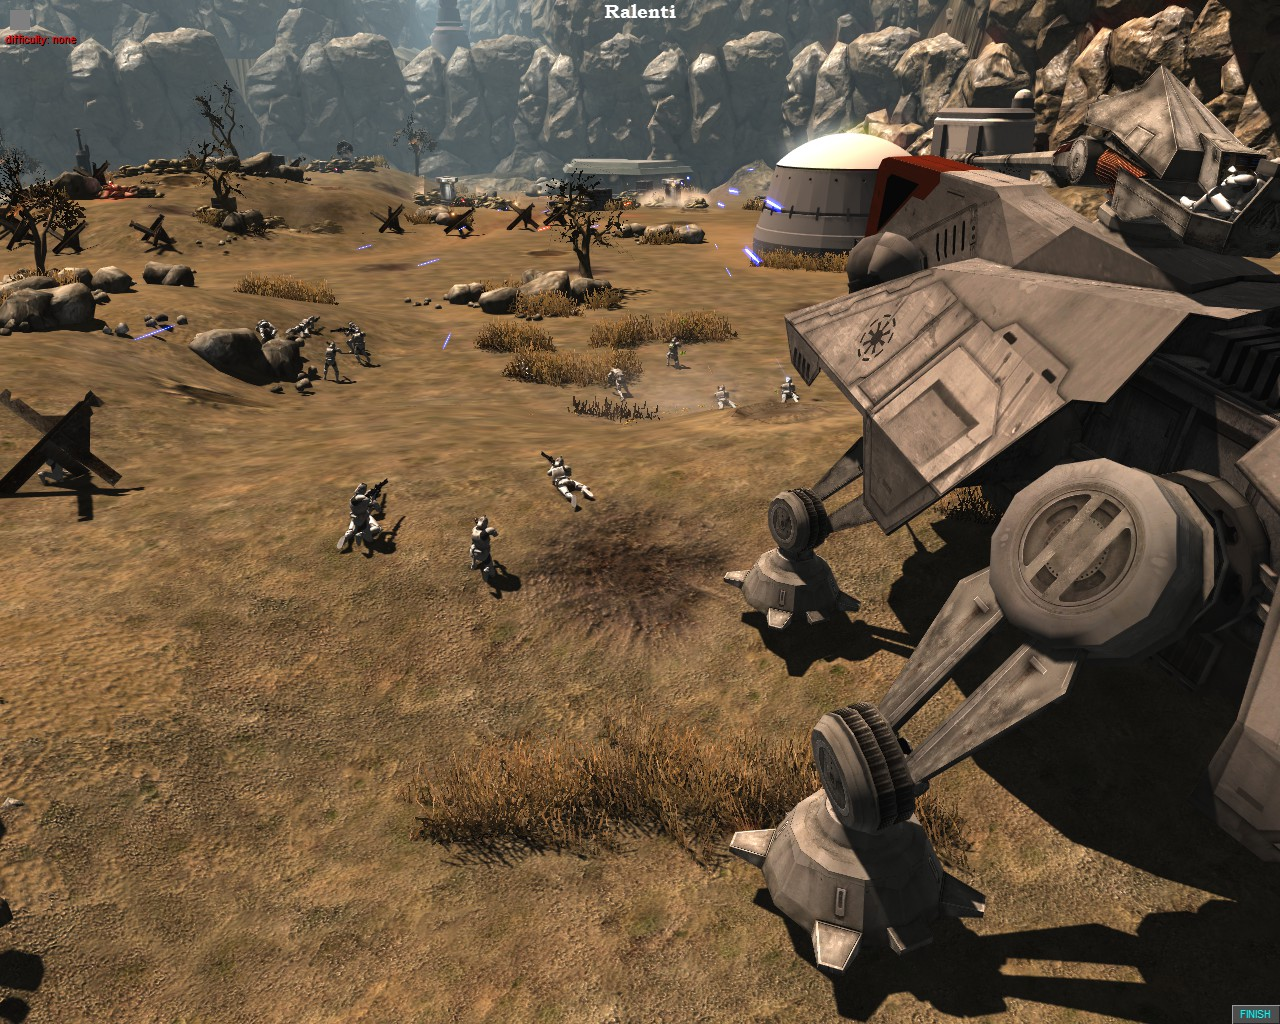 Swg Clone Wars Mod: FOR THE REPUBLIC Image